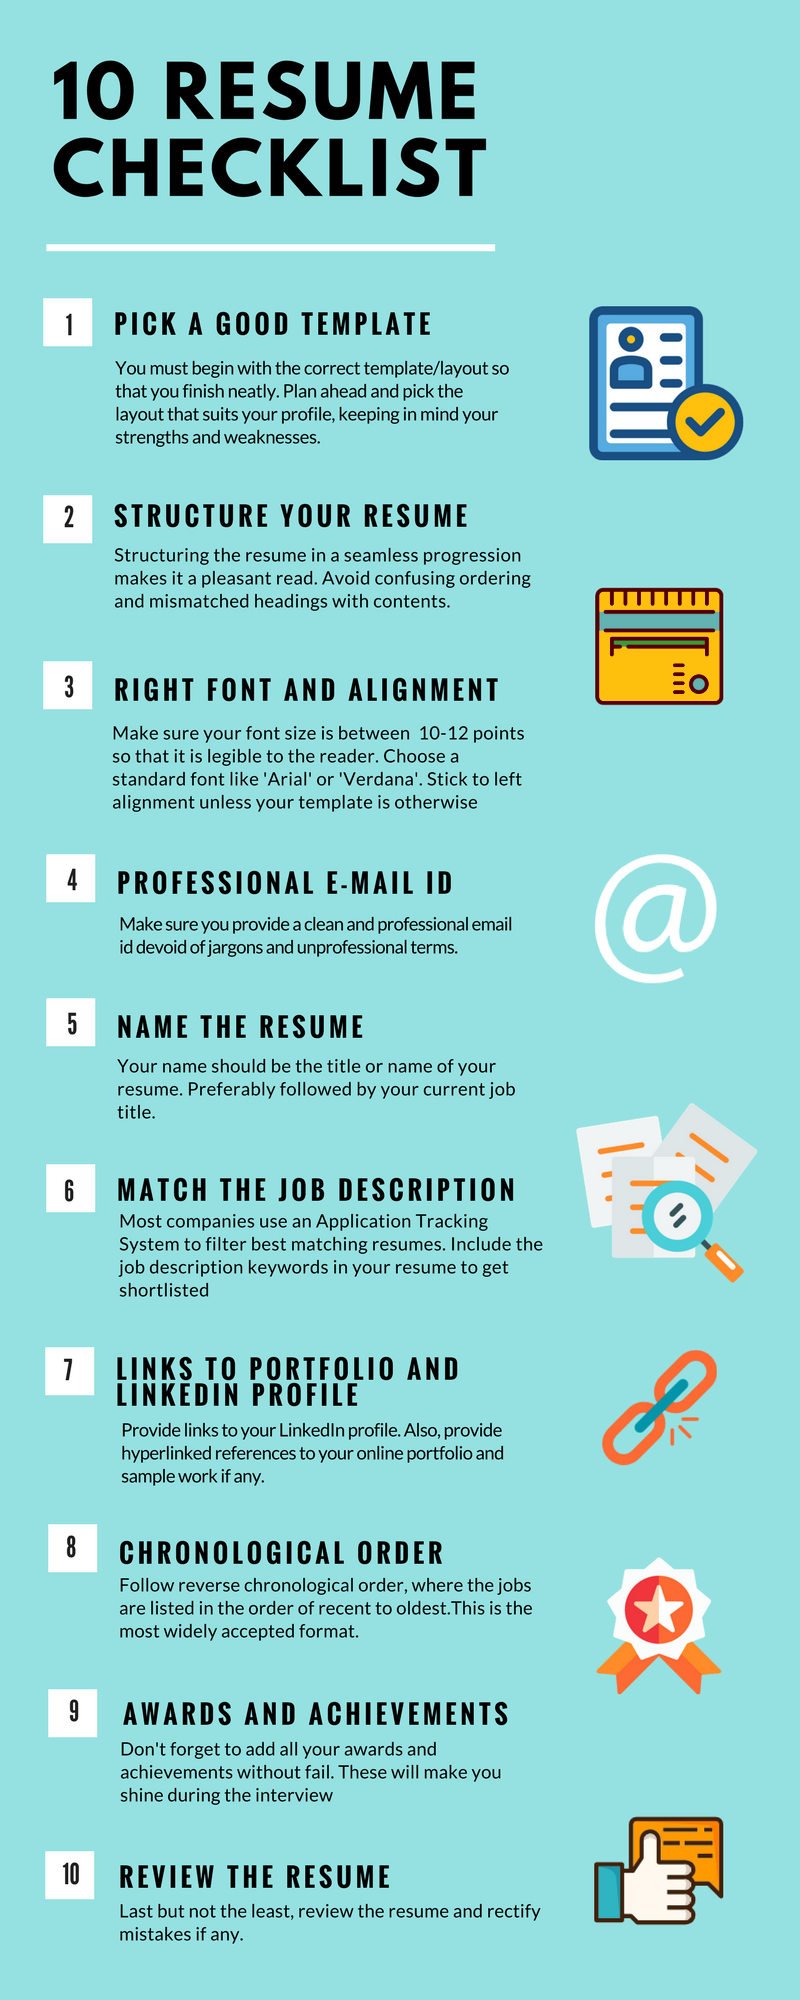 10 Lucid Resume Tips For A Flawless Impression | resume tips | Pinterest